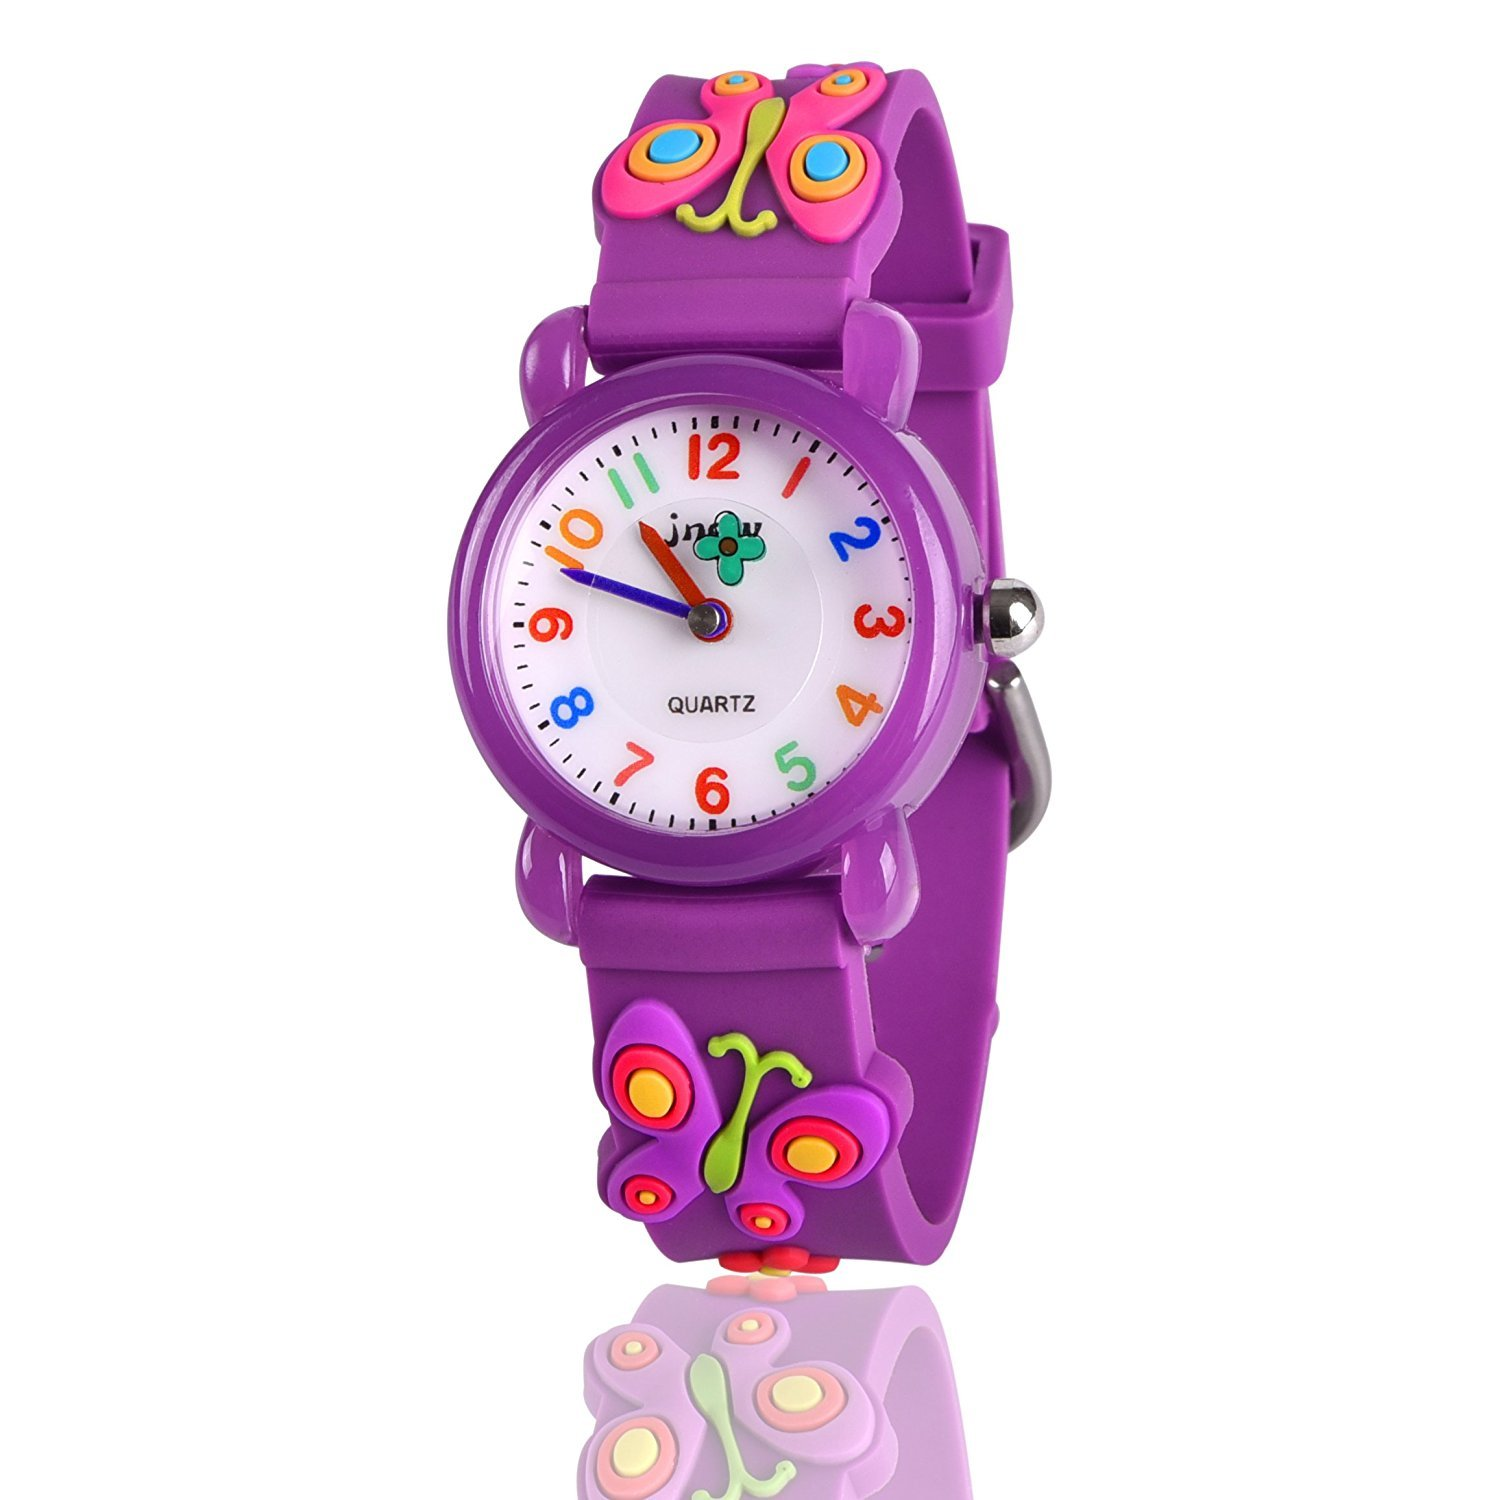 Ouwen 3-12 Year Old Girls Gifts, Unique Design 3D cute cartoon Kids Waterproof Watch Gifts for Girls 3-12 Year Old Toys for 3-12 Year Old Girls butterfly OWUSWC01